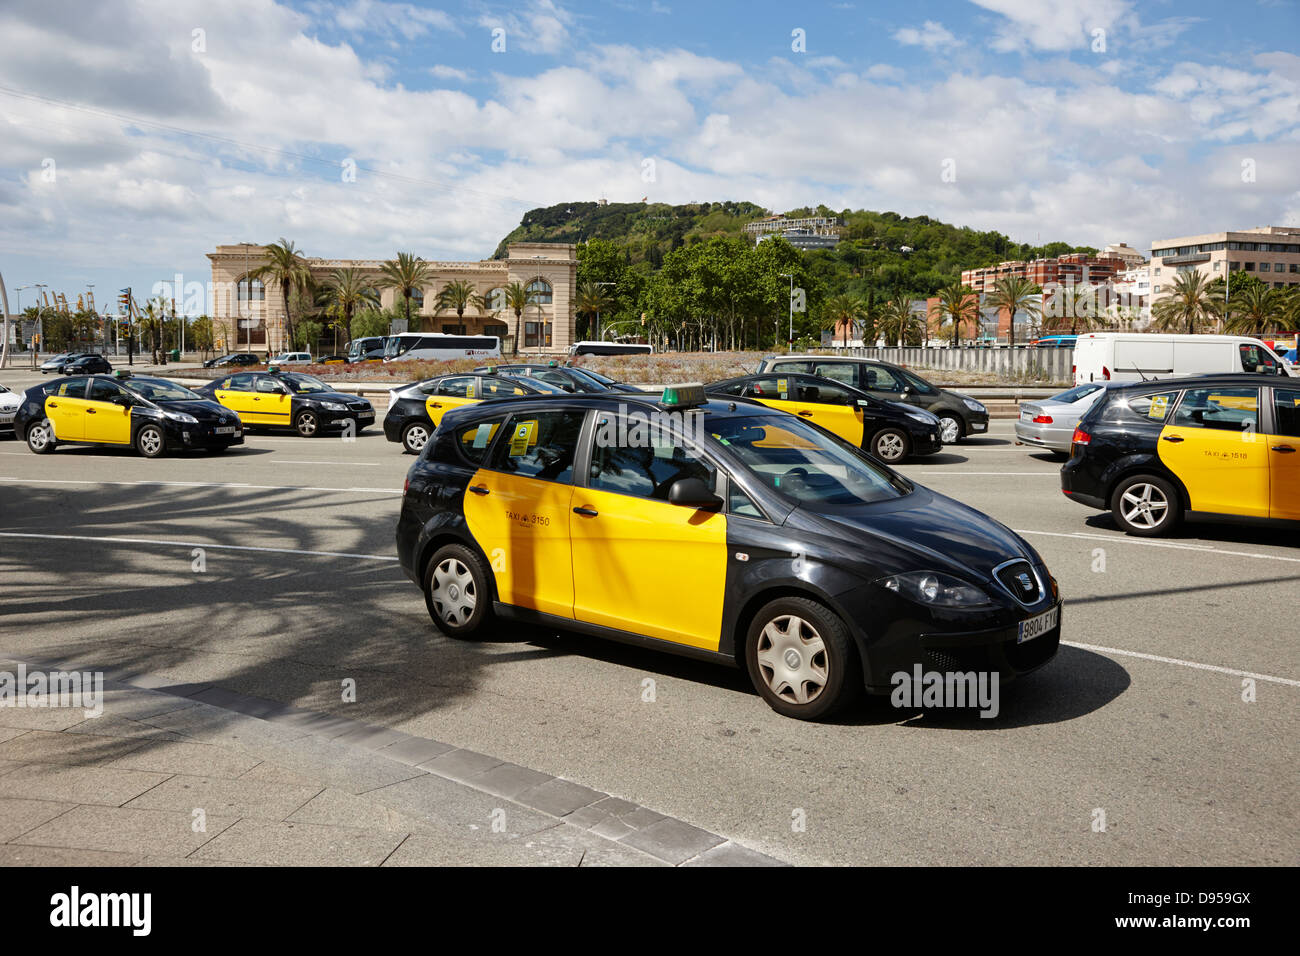 Black and yellow taxi cabs in placa drassanes barcelona city centre stock photo 57280298 alamy - Cab in barcelona ...